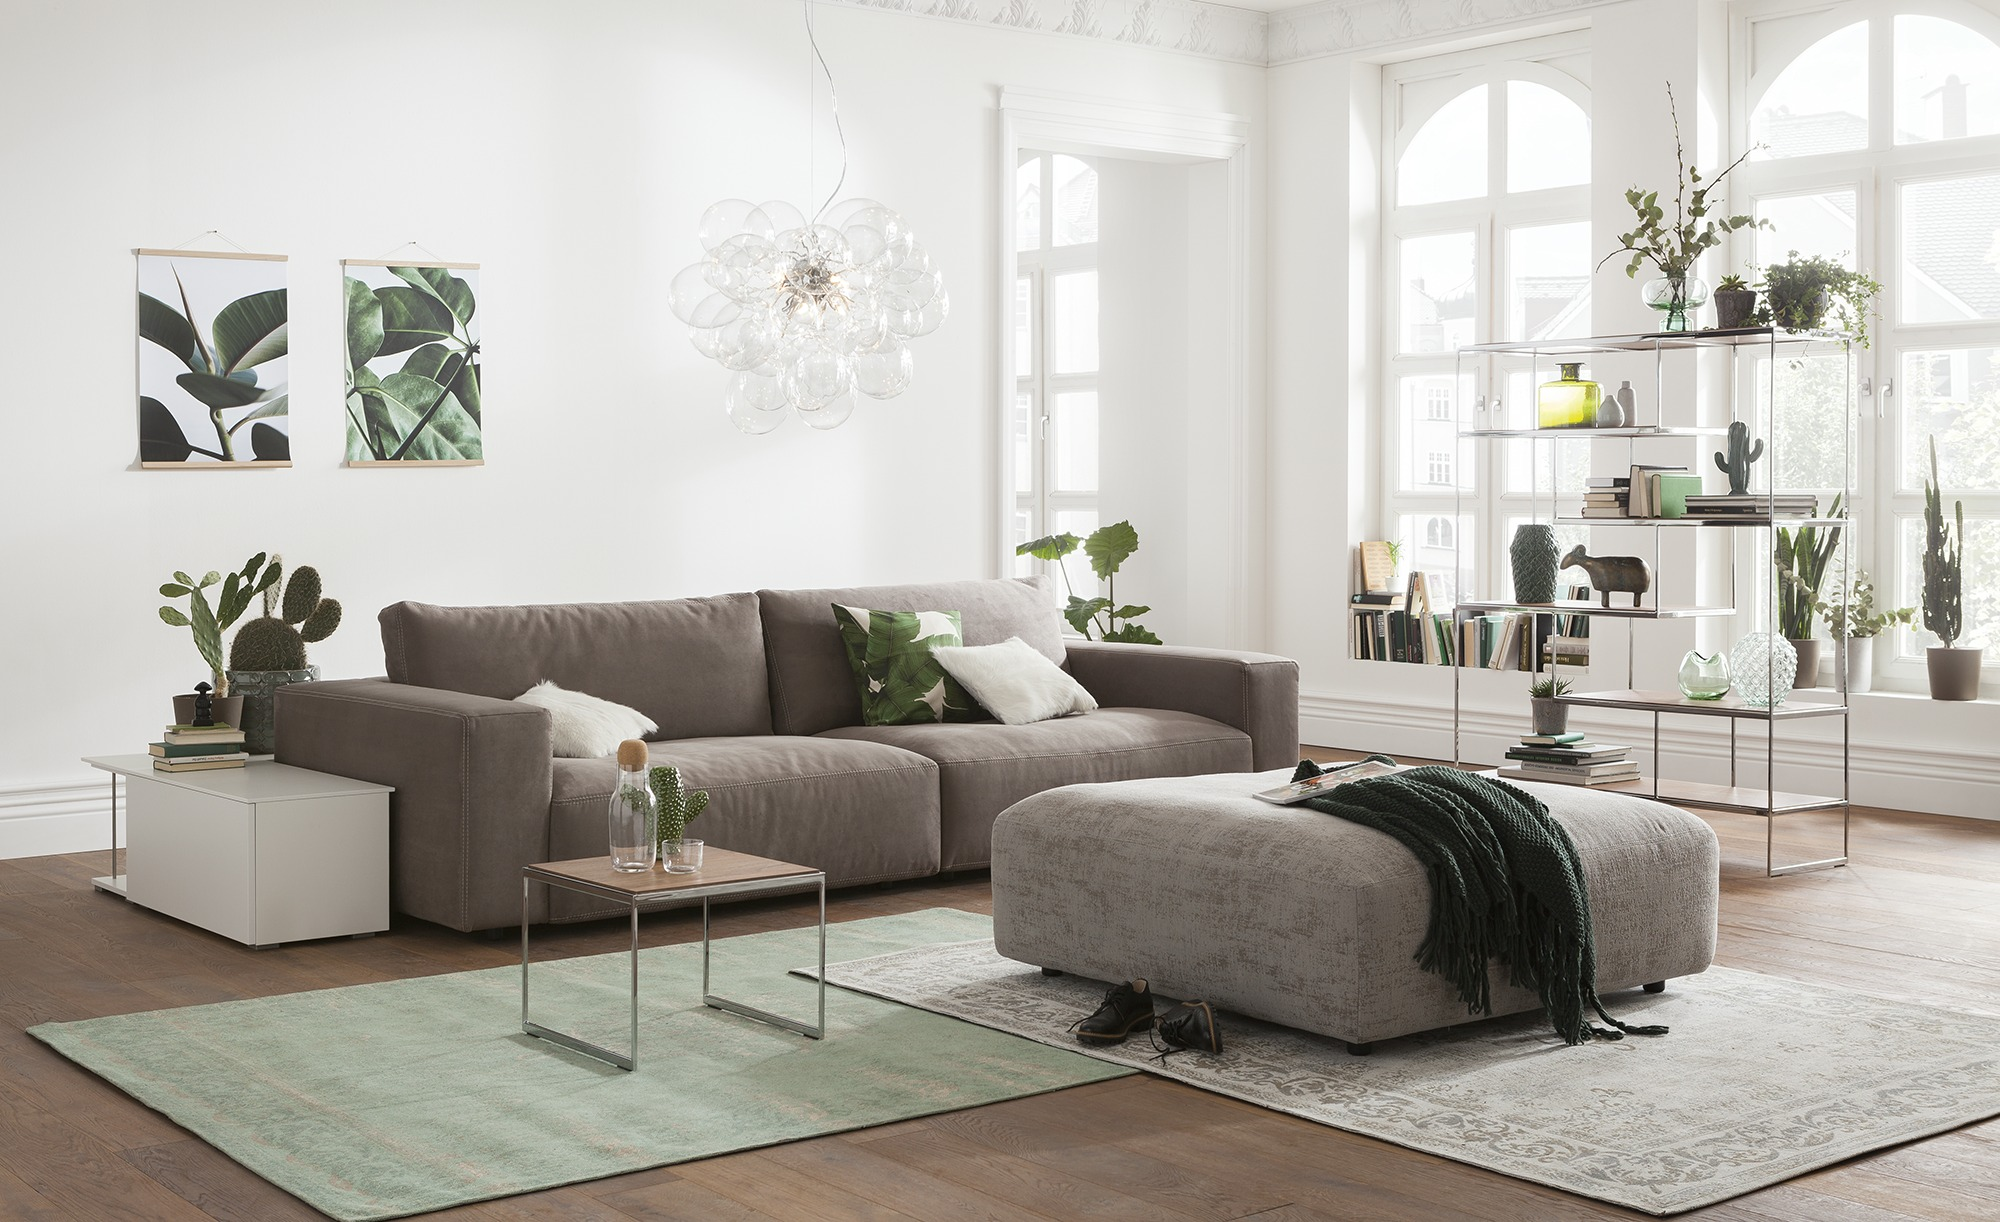 gallery m big sofa grau braun mikrofaser lucia. Black Bedroom Furniture Sets. Home Design Ideas